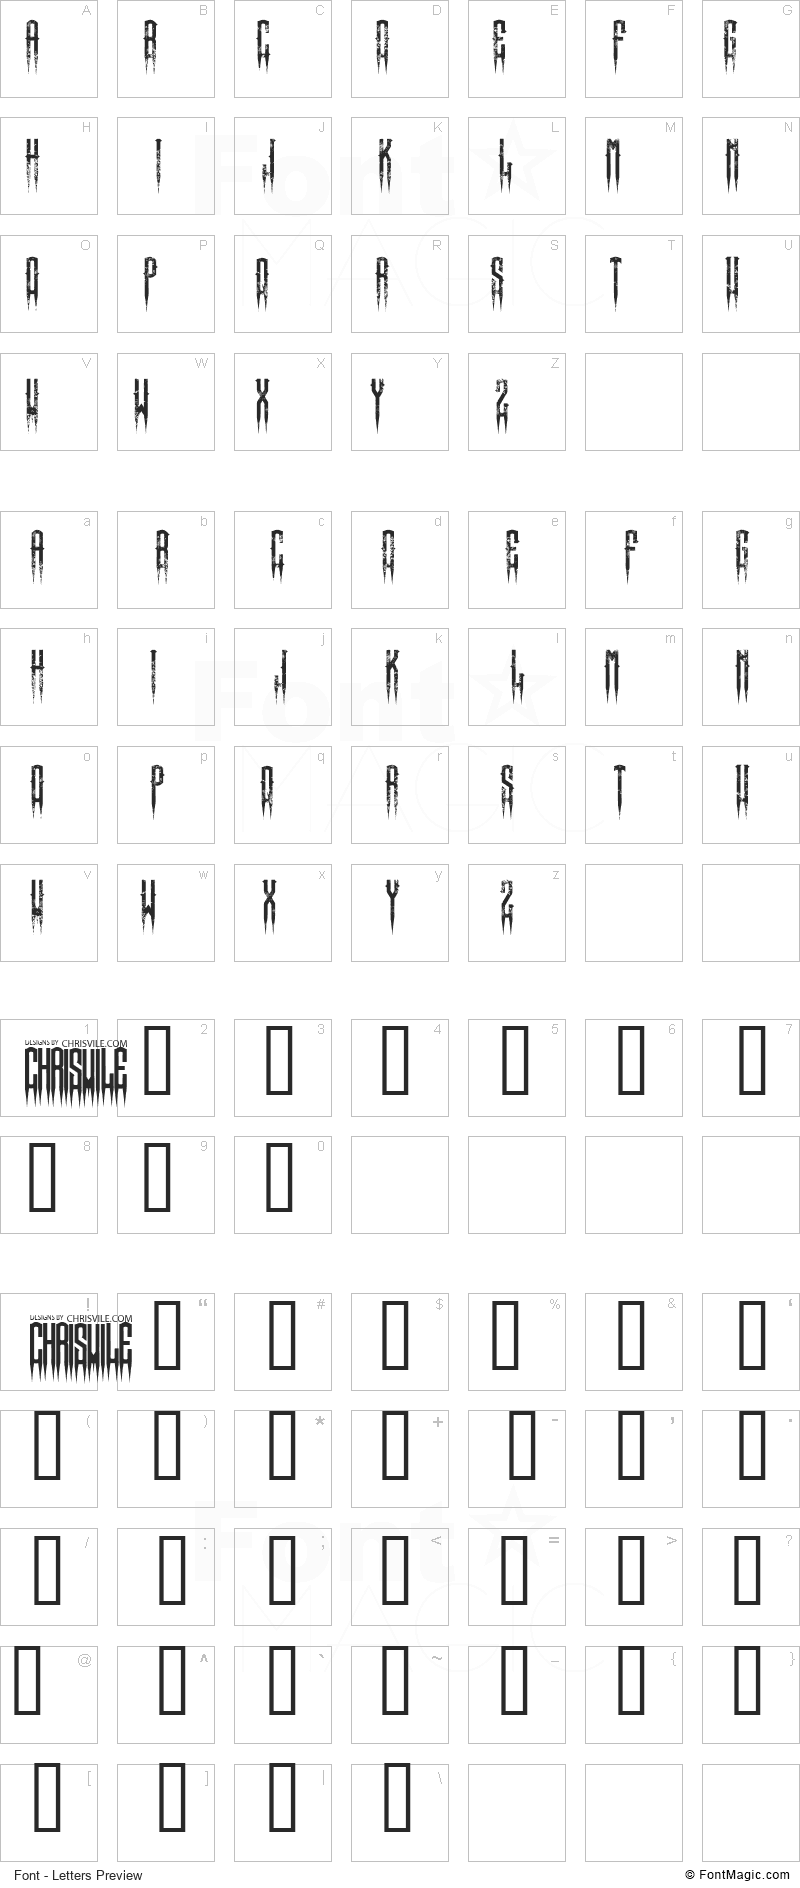 XSpiked Font - All Latters Preview Chart